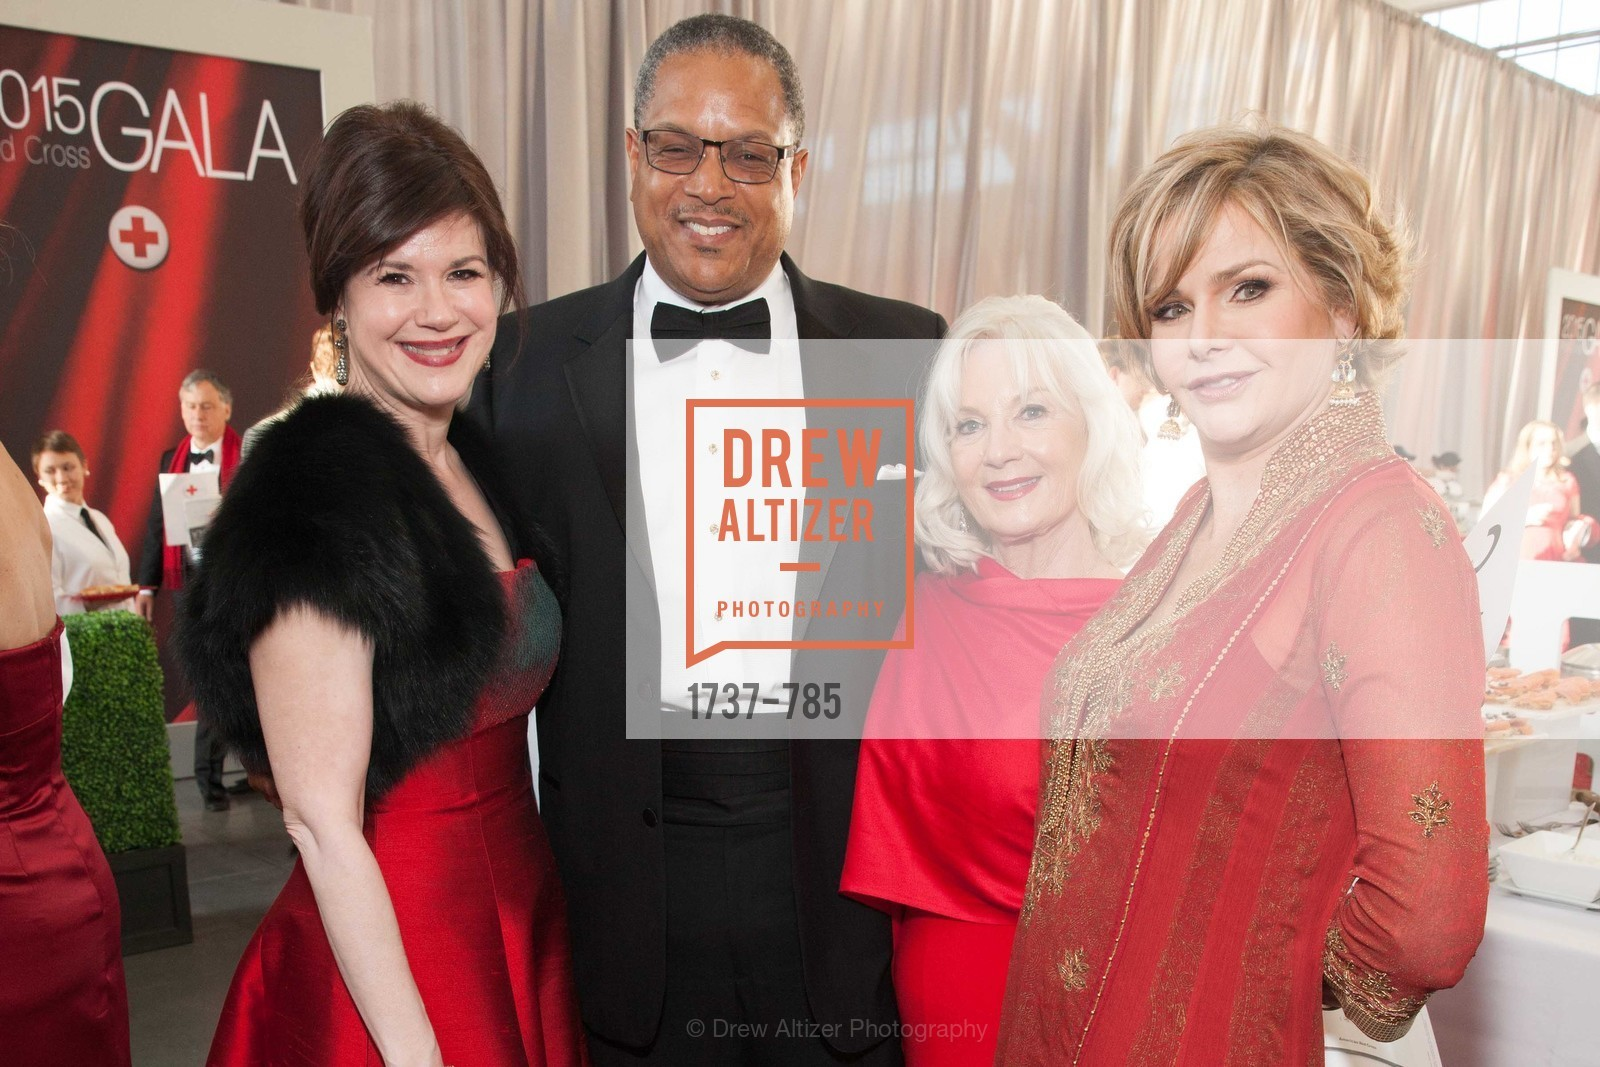 Elaine Mellis, Timothy Alan Simon, Arlene Inch, Deirdre Byrne, 2015 RED CROSS Gala, US, April 11th, 2015,Drew Altizer, Drew Altizer Photography, full-service agency, private events, San Francisco photographer, photographer california